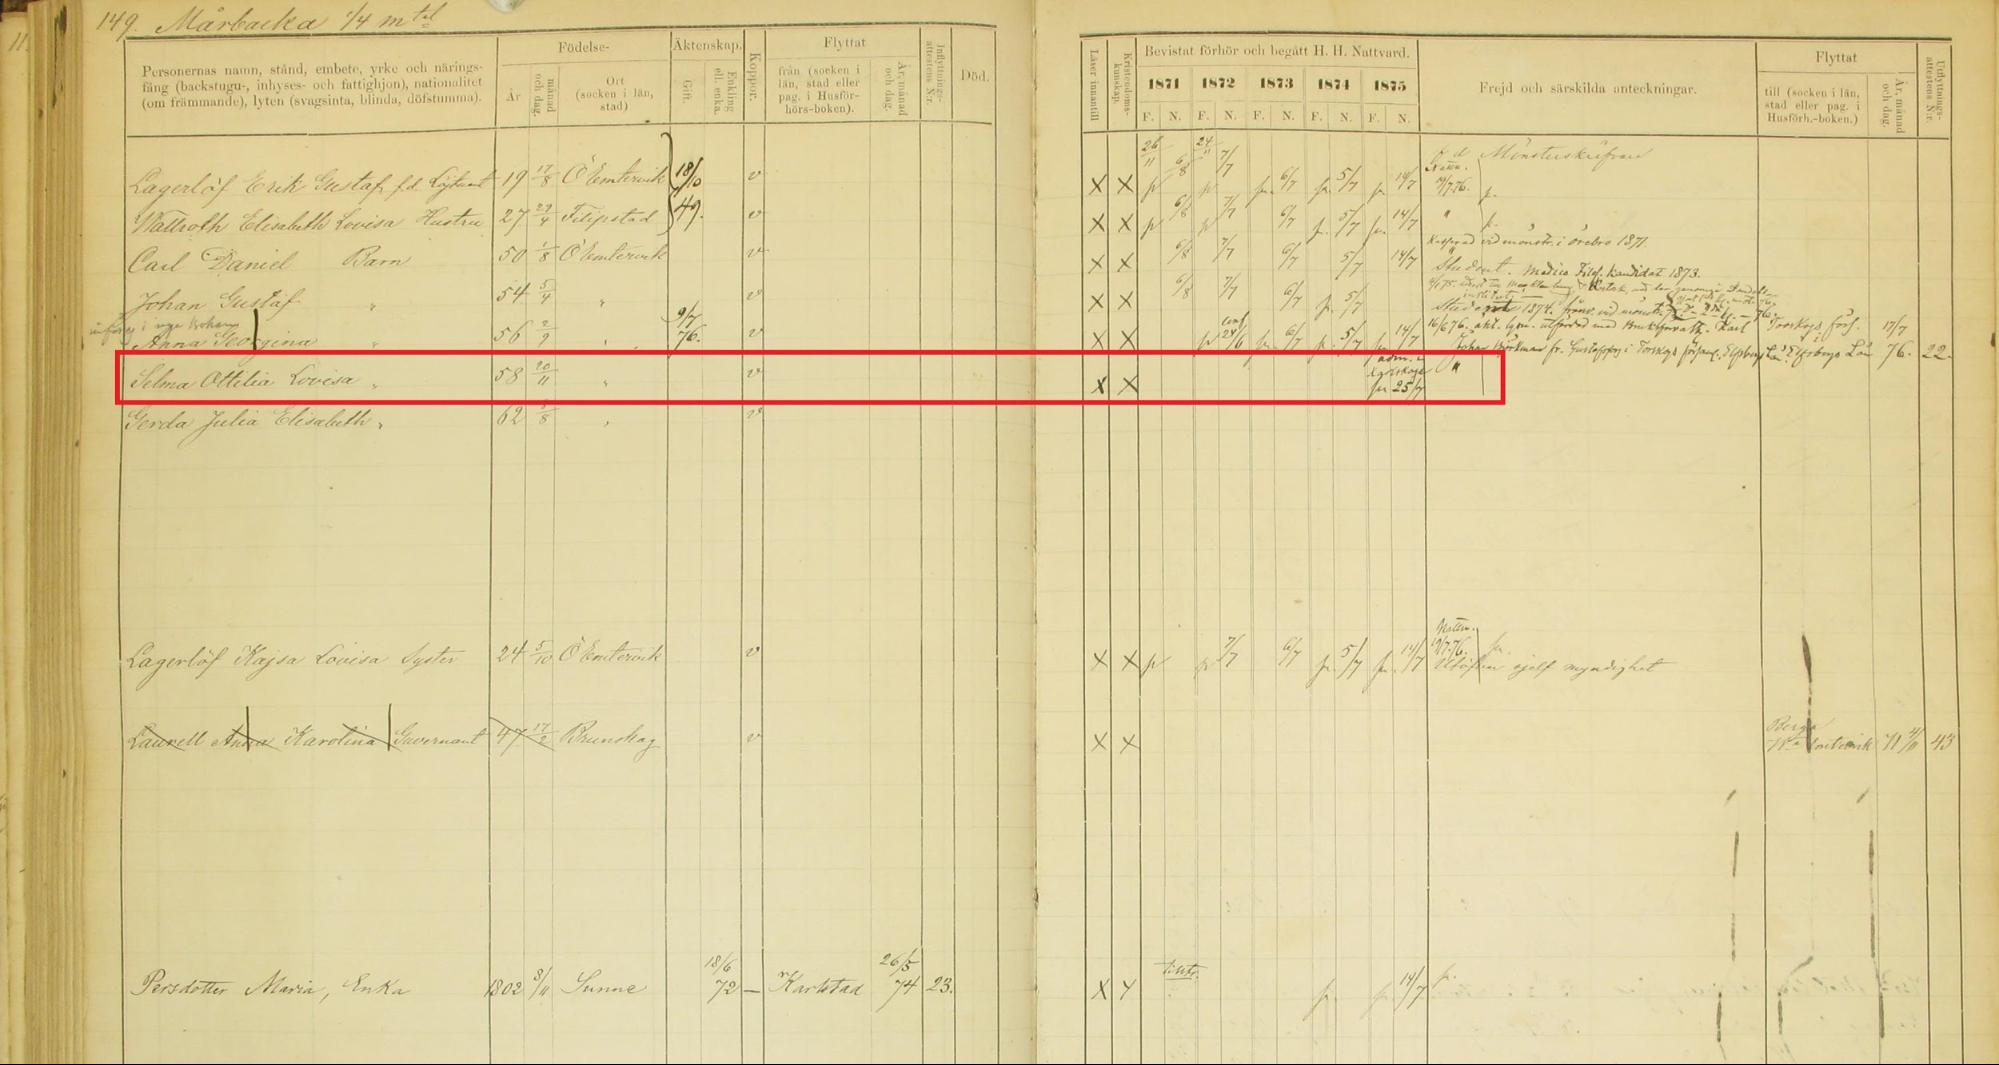 Sweden Household Examination Record of Selma Lagerlöf [Credit: MyHeritage Sweden Household Examination Books, 1820-1947]